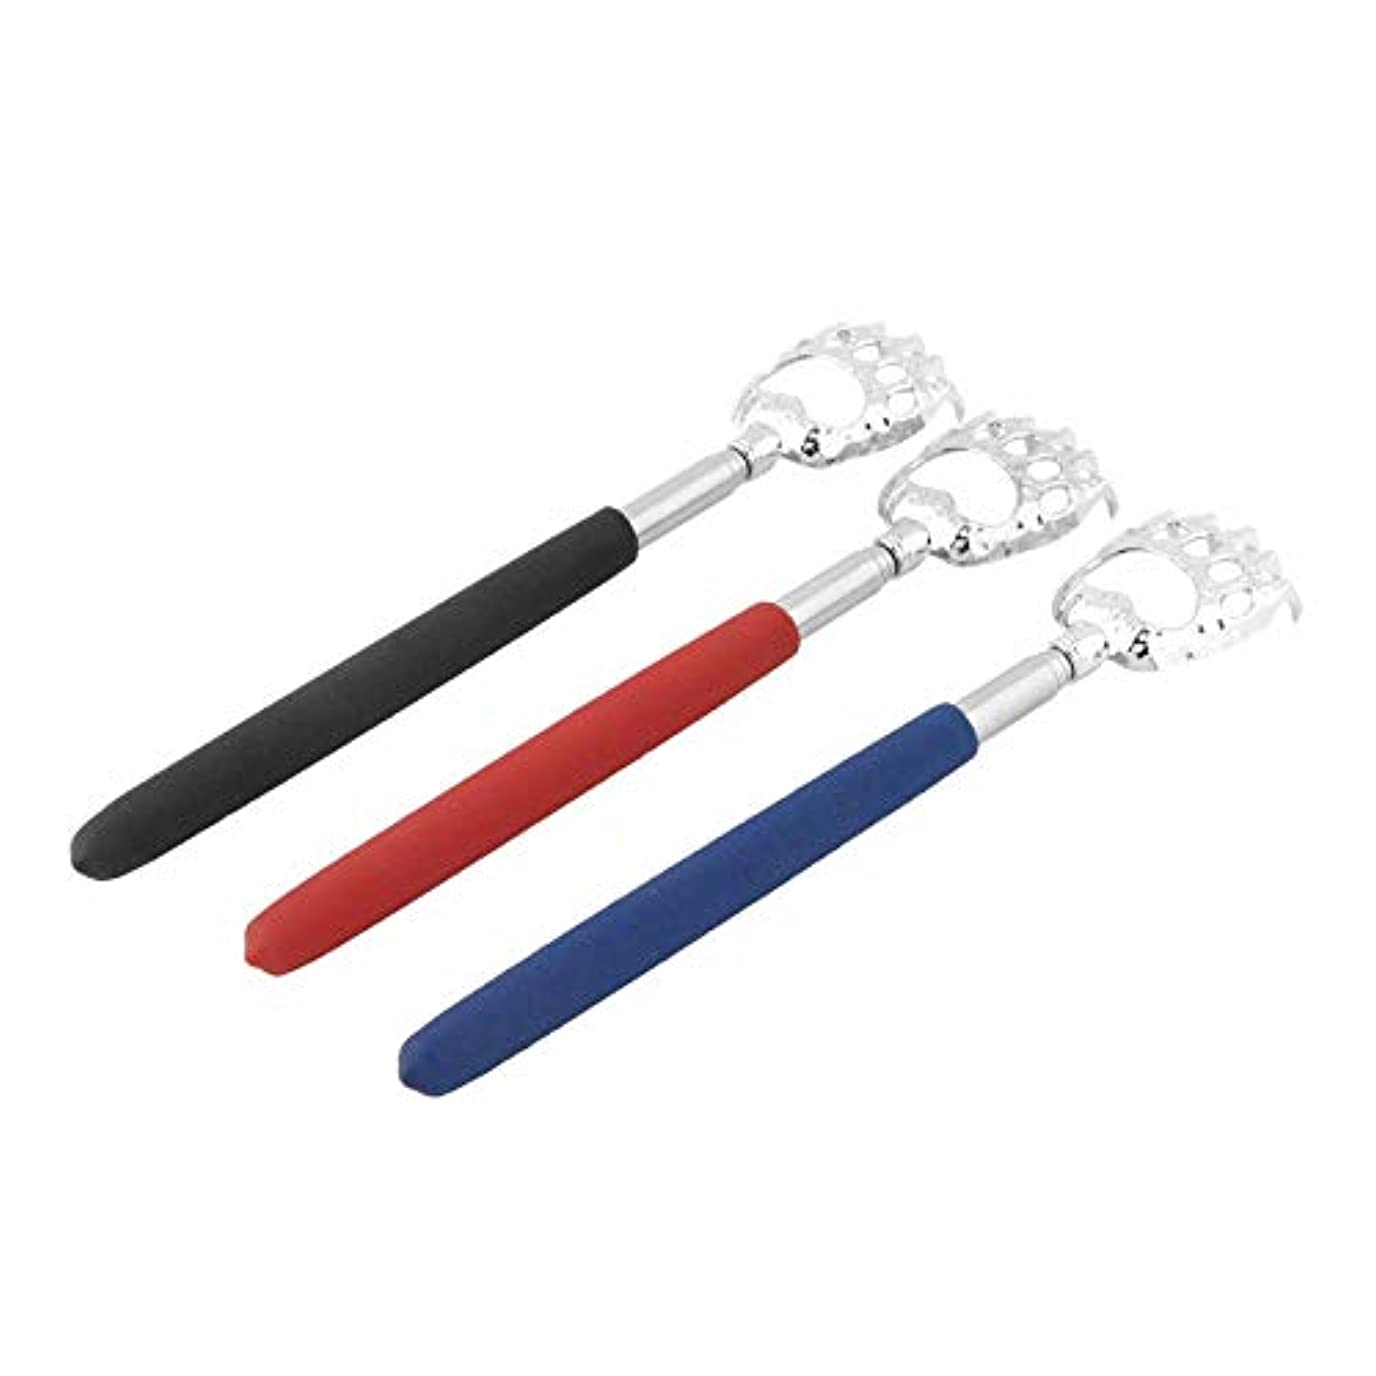 くしゃくしゃ受け継ぐ送信するHot Selling 10pcs Bear Claw healthy Back Scratcher Zinc alloy Portable Extendable Handy Pocket Pen Clip Back Scratcher